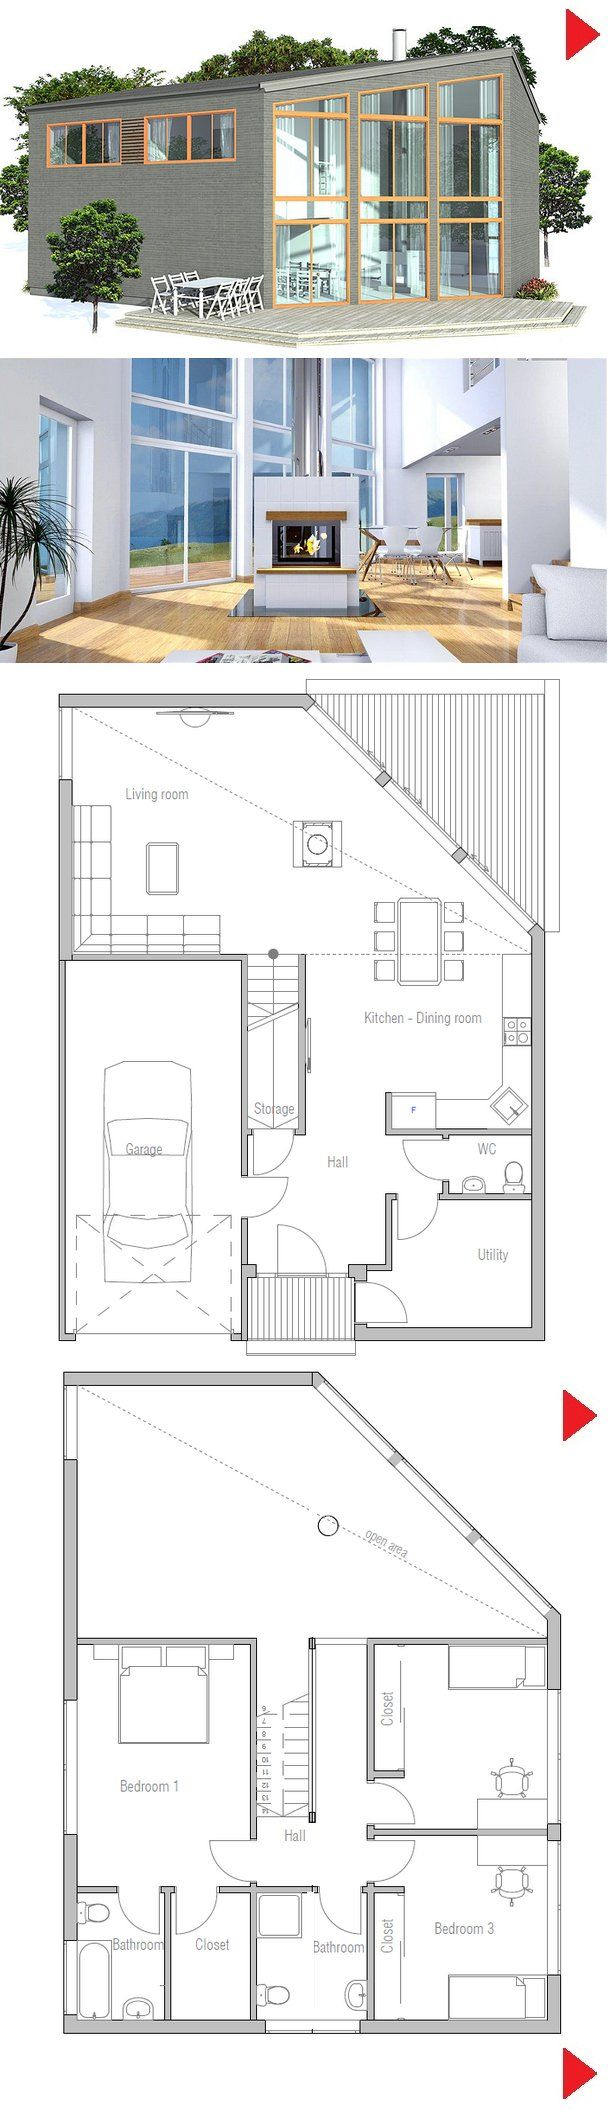 1000+ images about Sketch on Pinterest Modern houses, Modern ... - ^